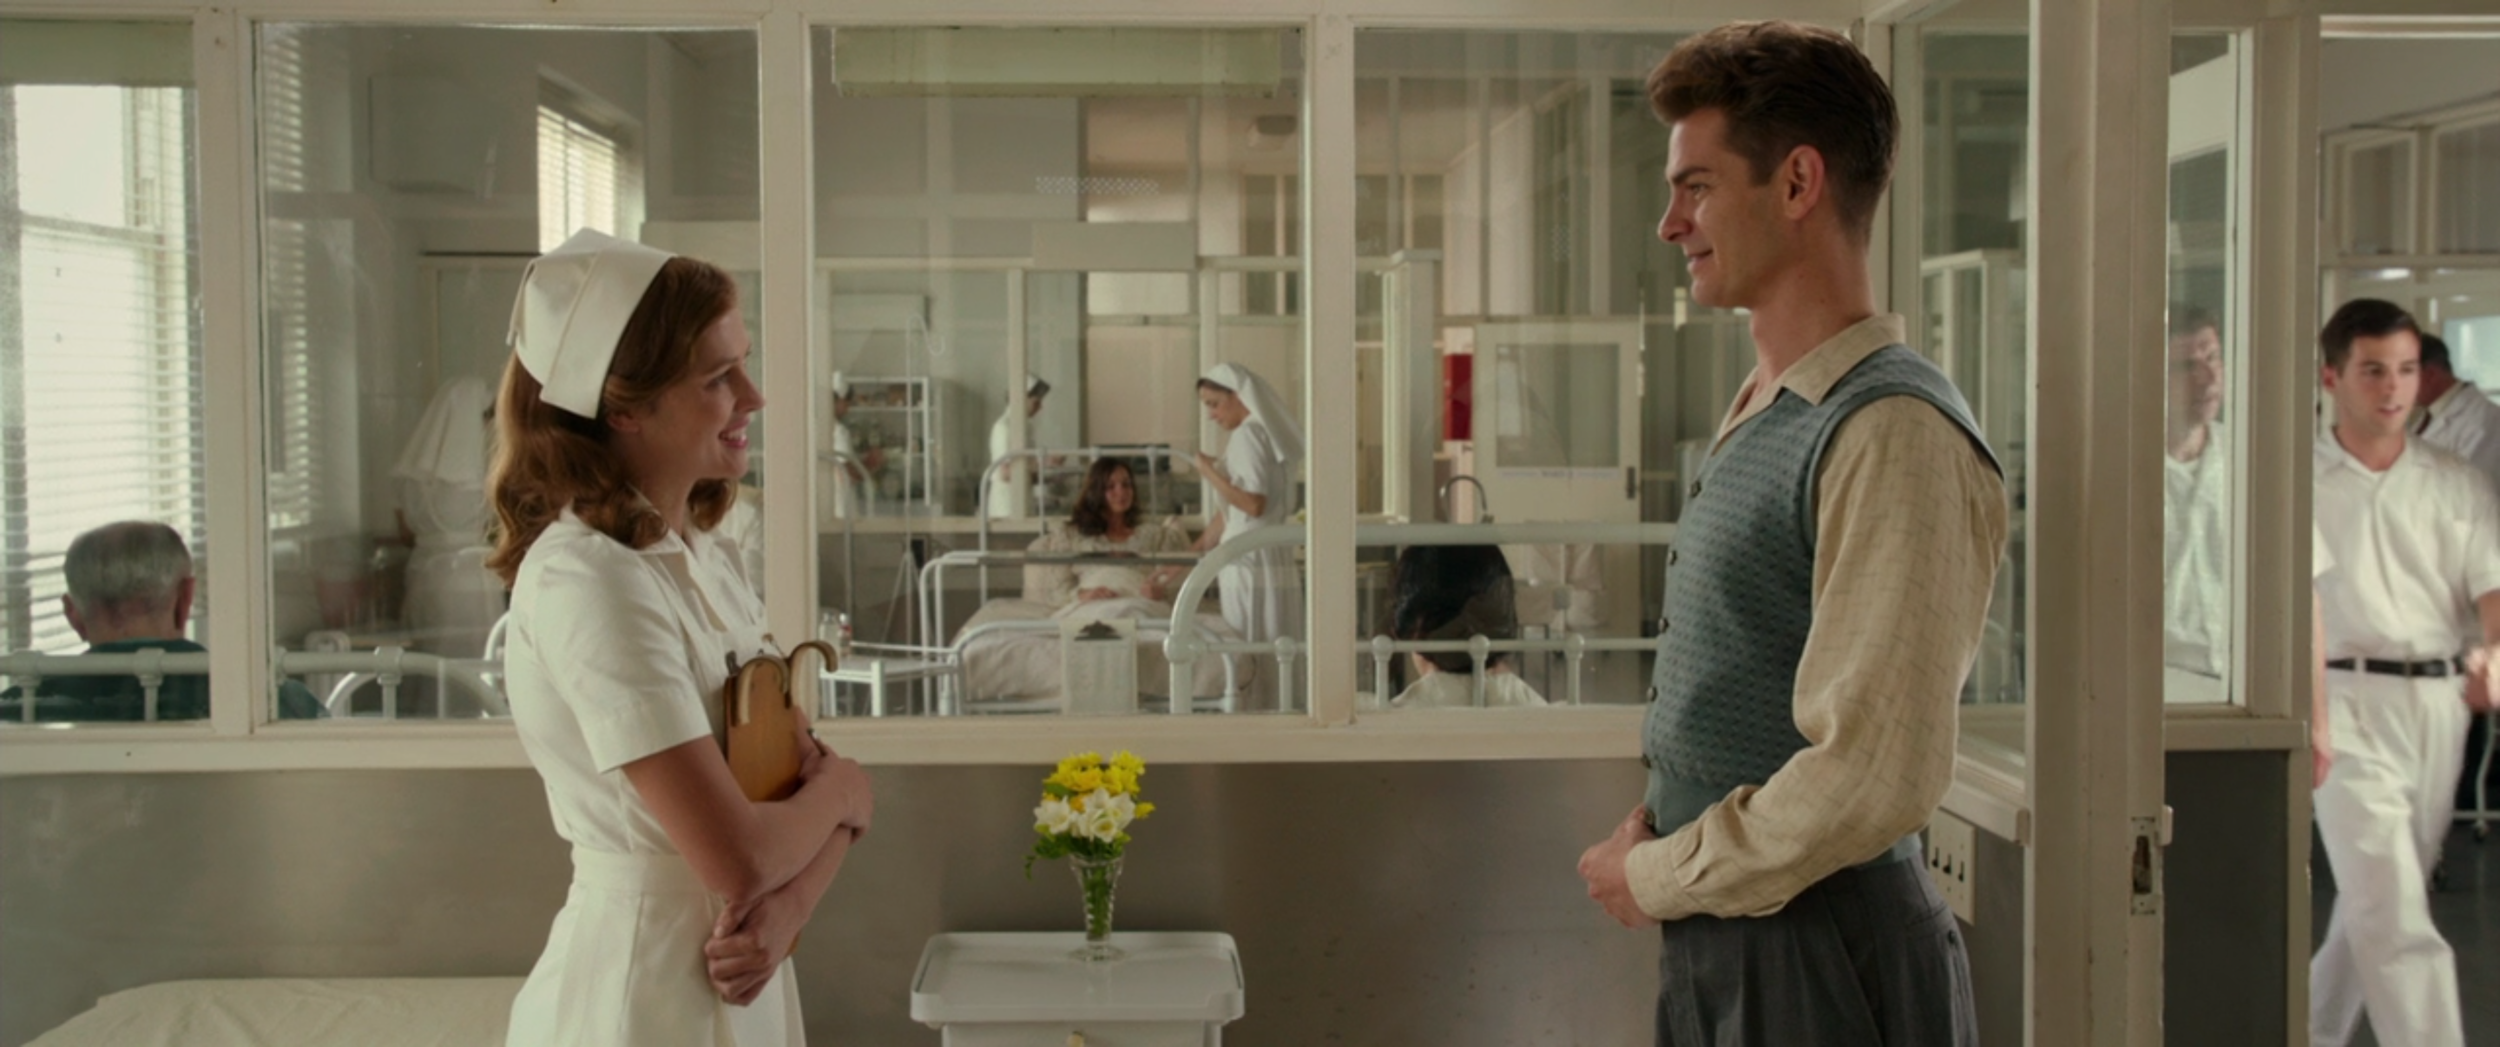 Andrew Garfield as Desmond Doss and Theresa Palmer as Dorothy Schutte in  Hacksaw Ridge